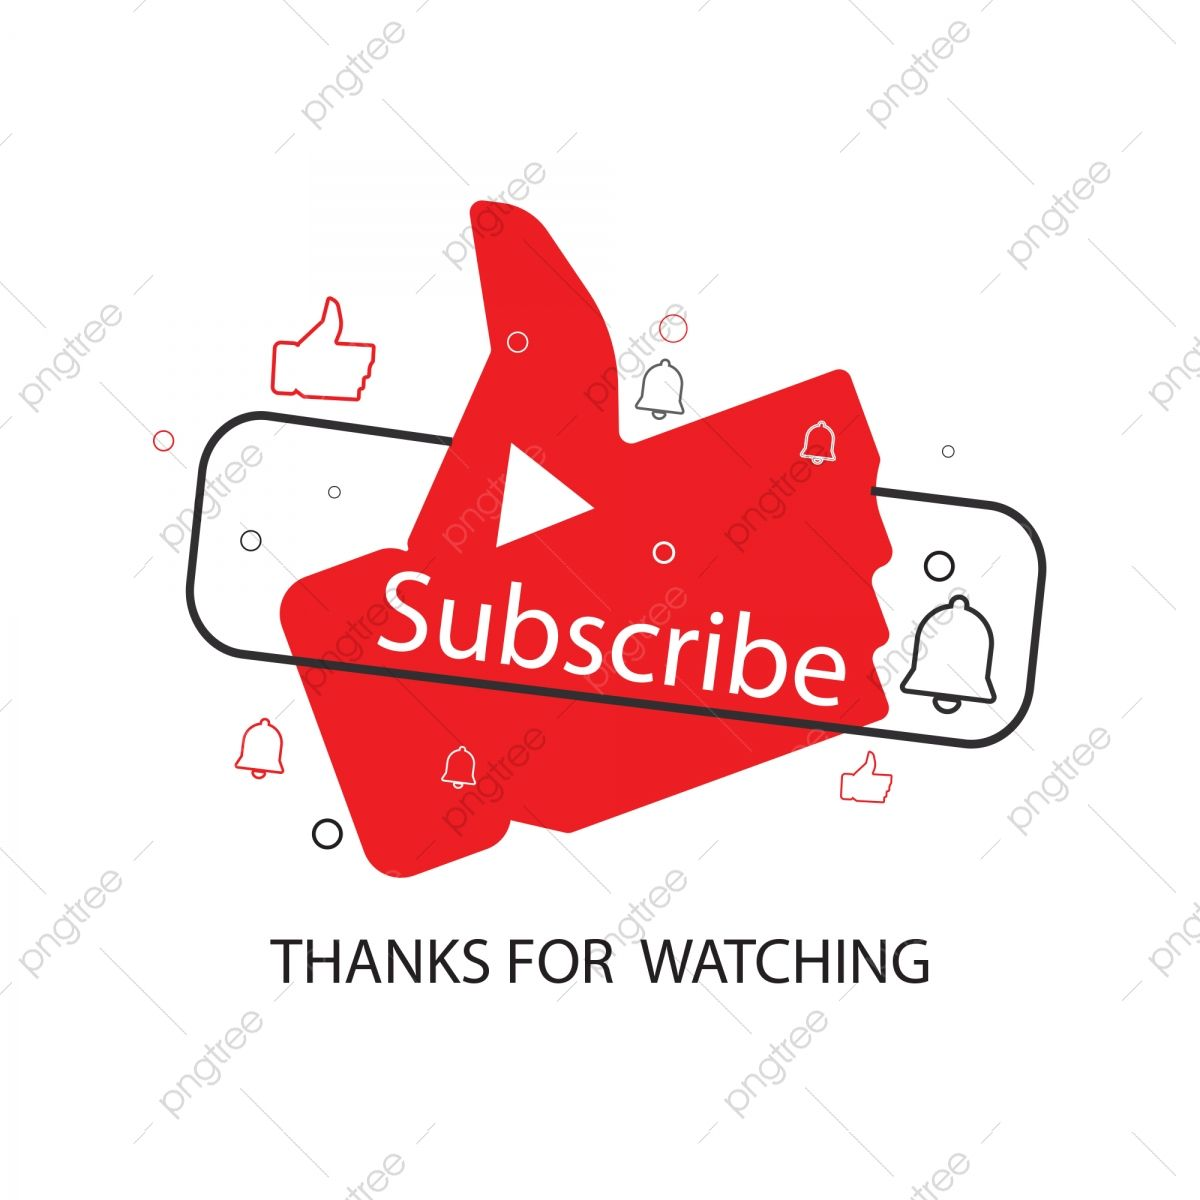 Youtube Subscribe Button With Like Bell Icon Youtube Subscribe Subscribe Button Png And Vector With Transparent Background For Free Download Jenis Huruf Tulisan Desain Logo Bisnis Desain Banner